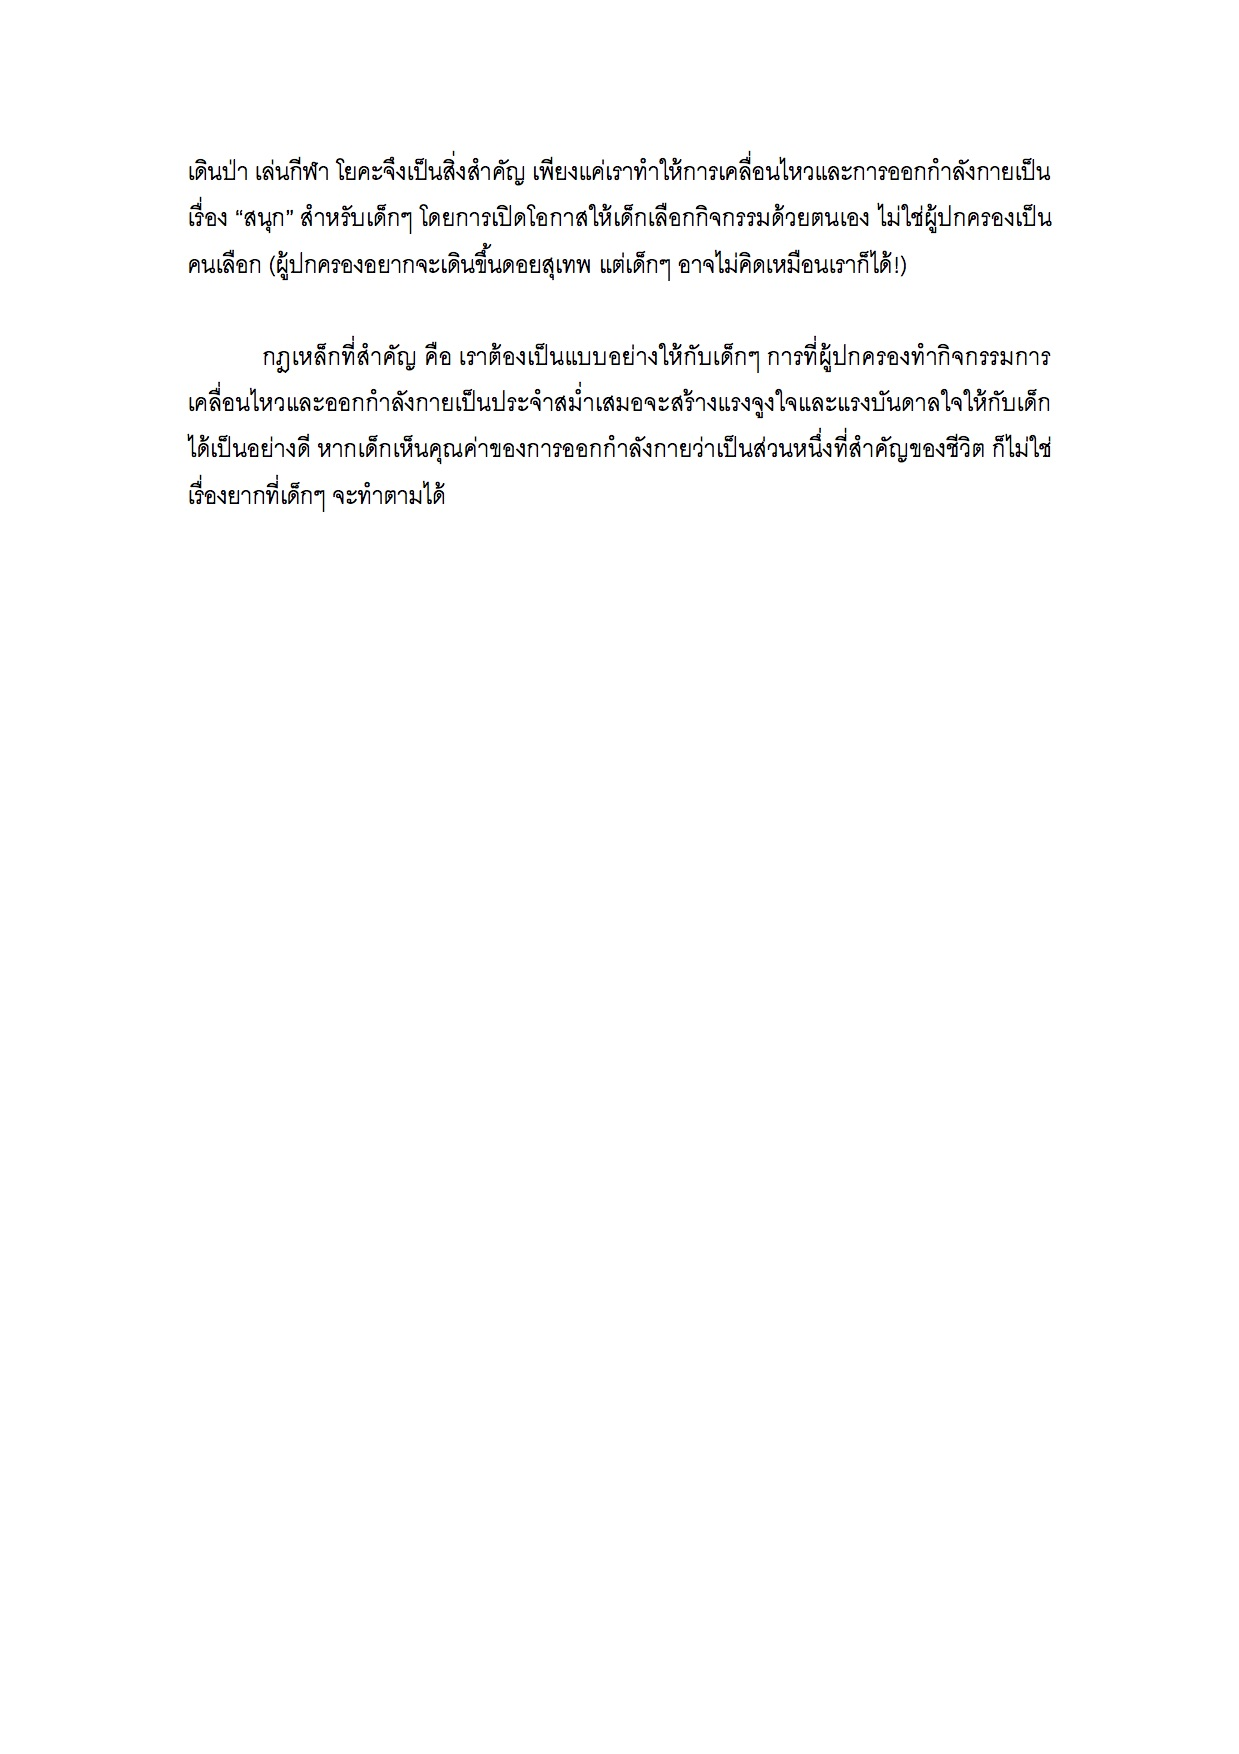 Panyaden Live & Learn: Active Kids, Successful Learning Thai PDF page 3